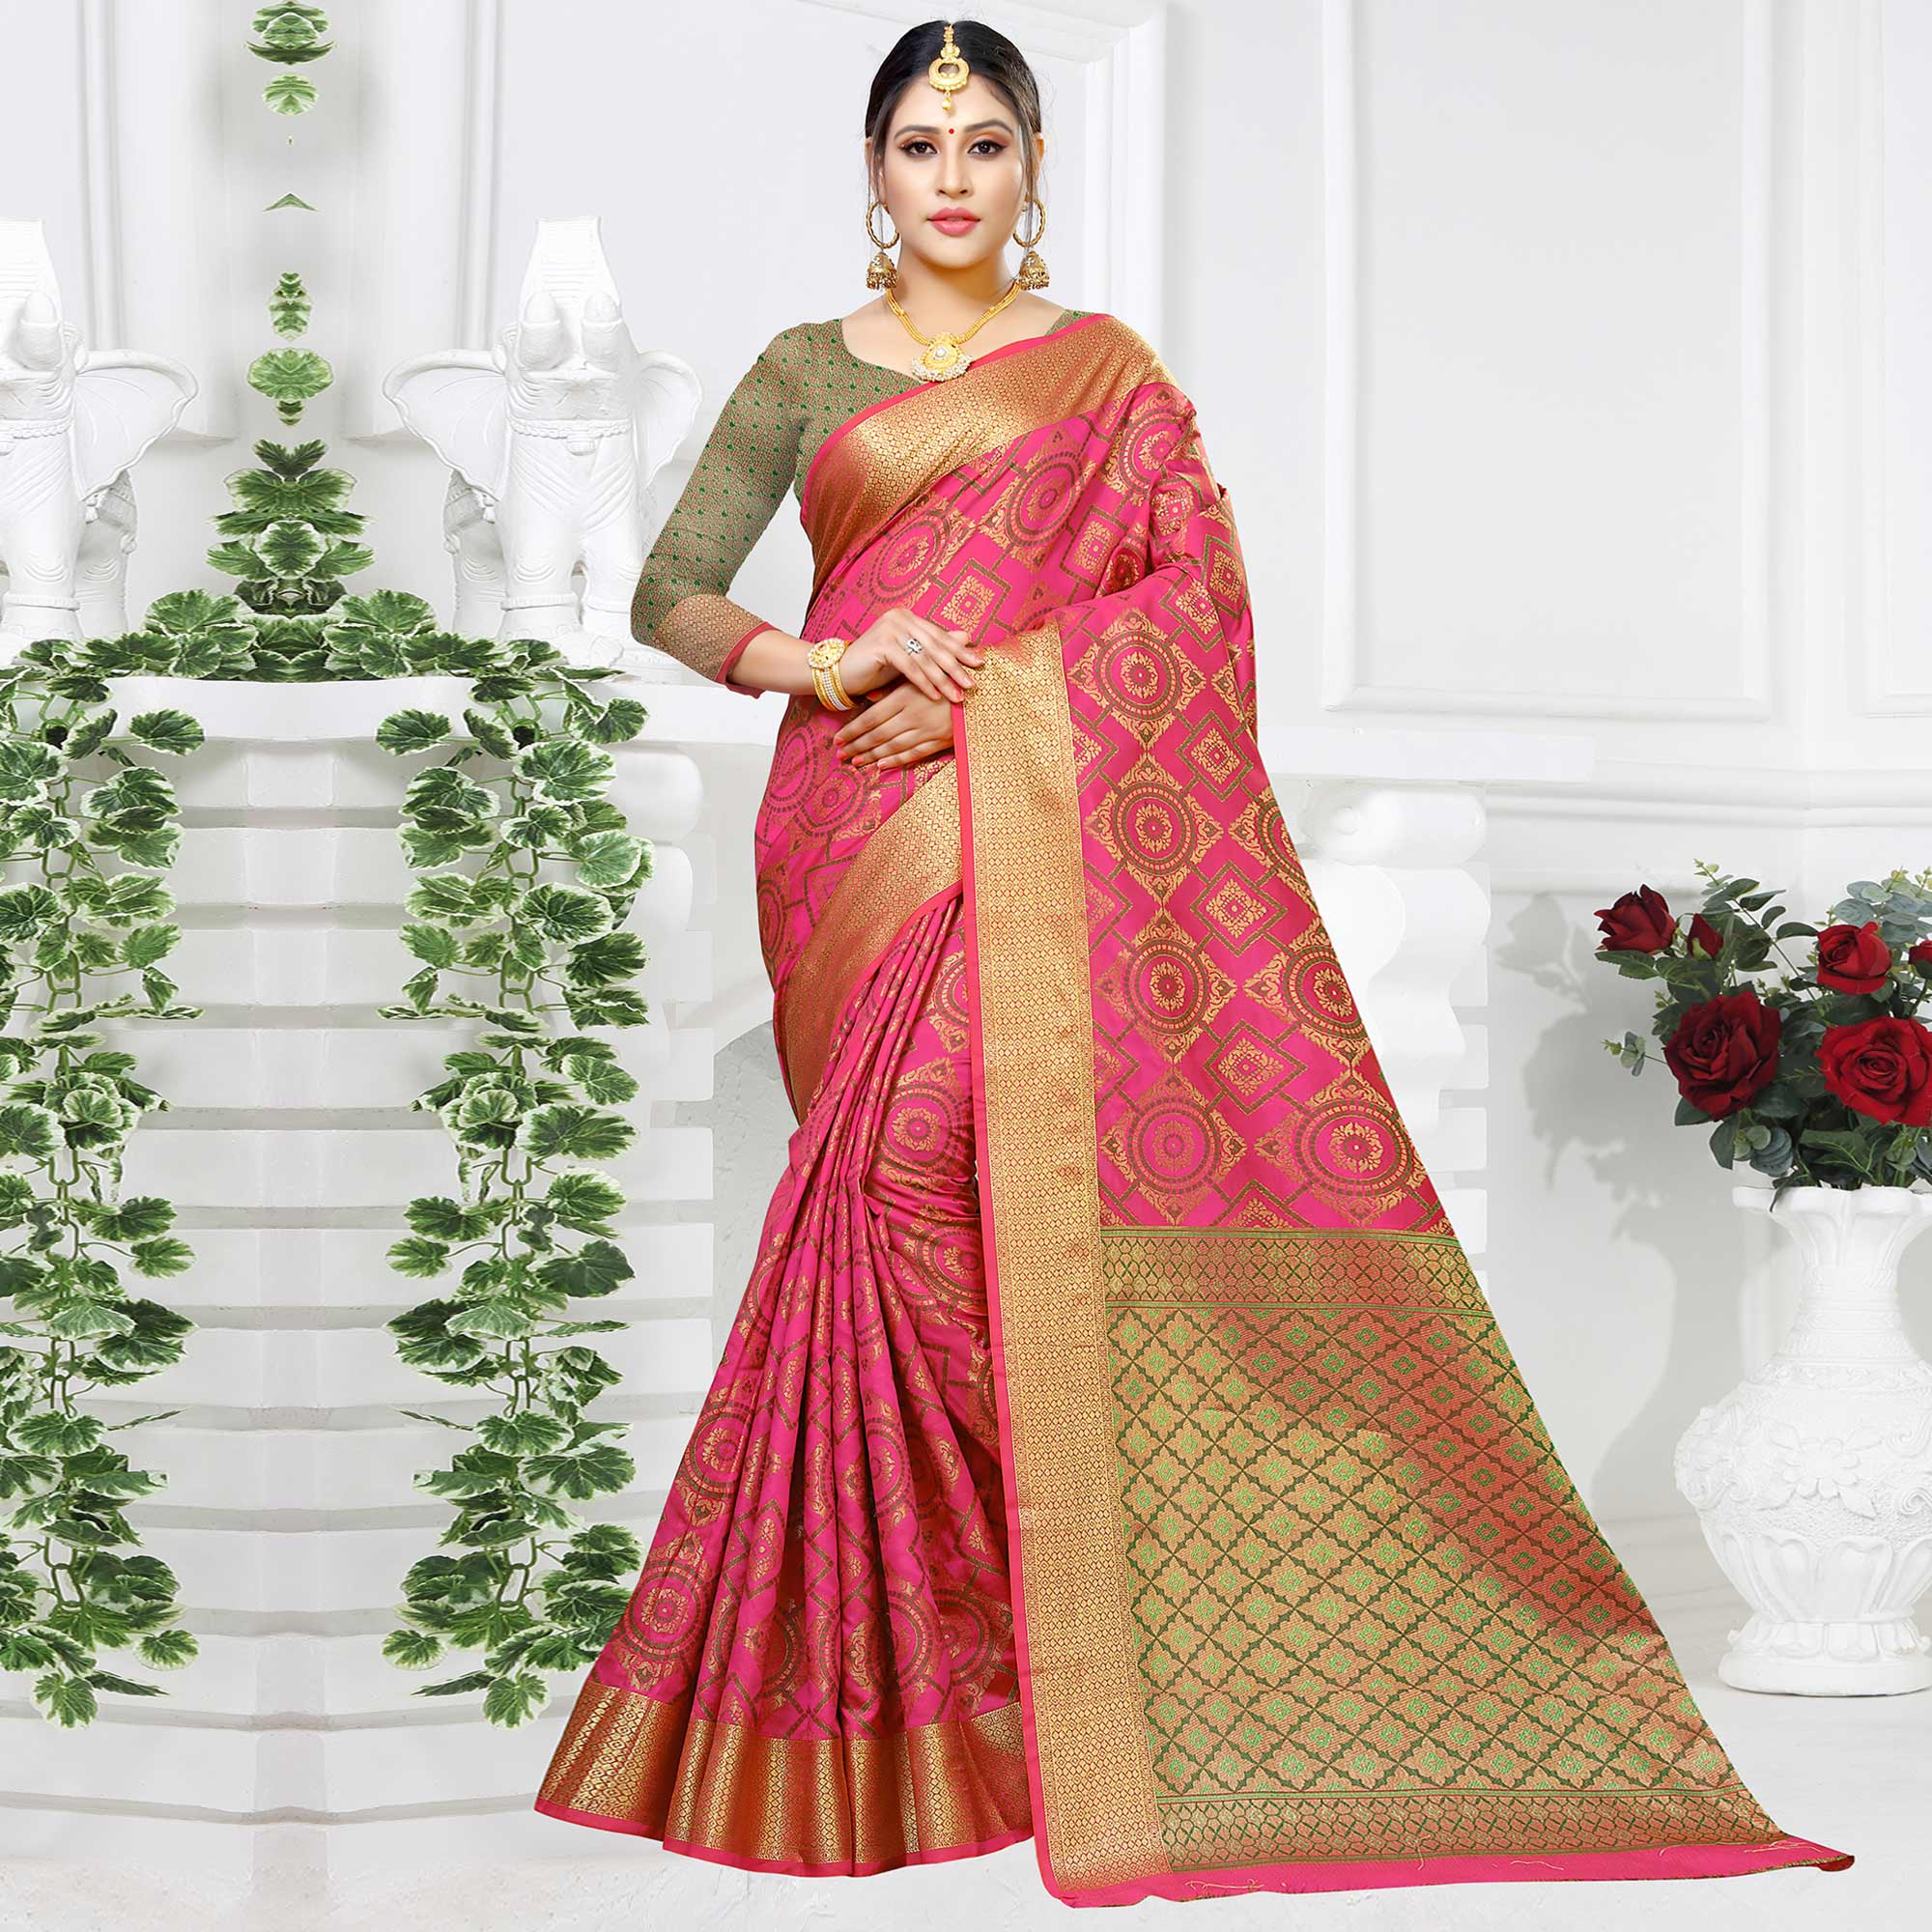 Marvellous Pink Colored Festive Wear Woven Silk Saree